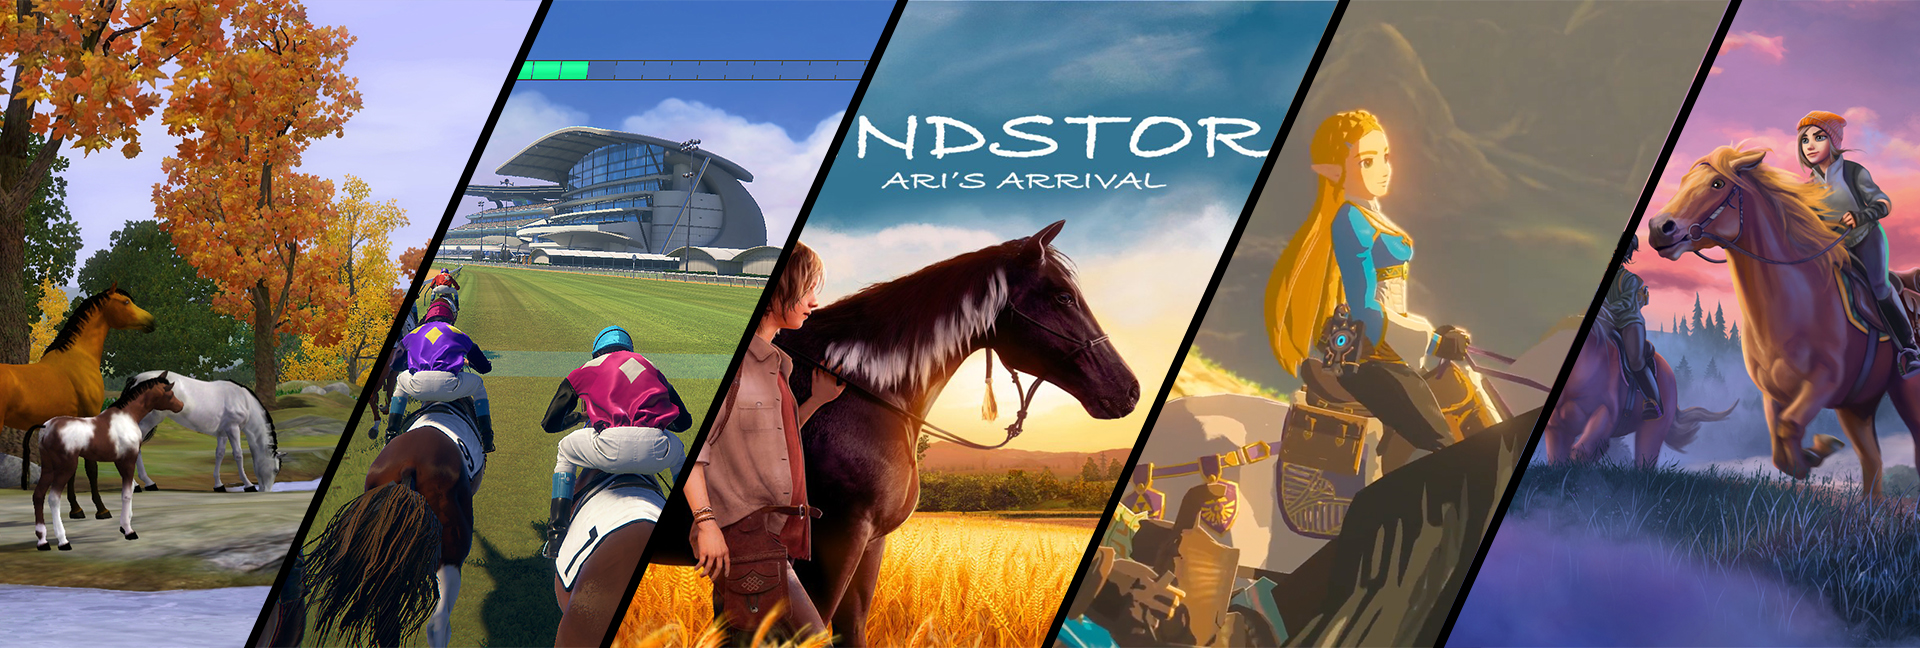 no horse download games for pc